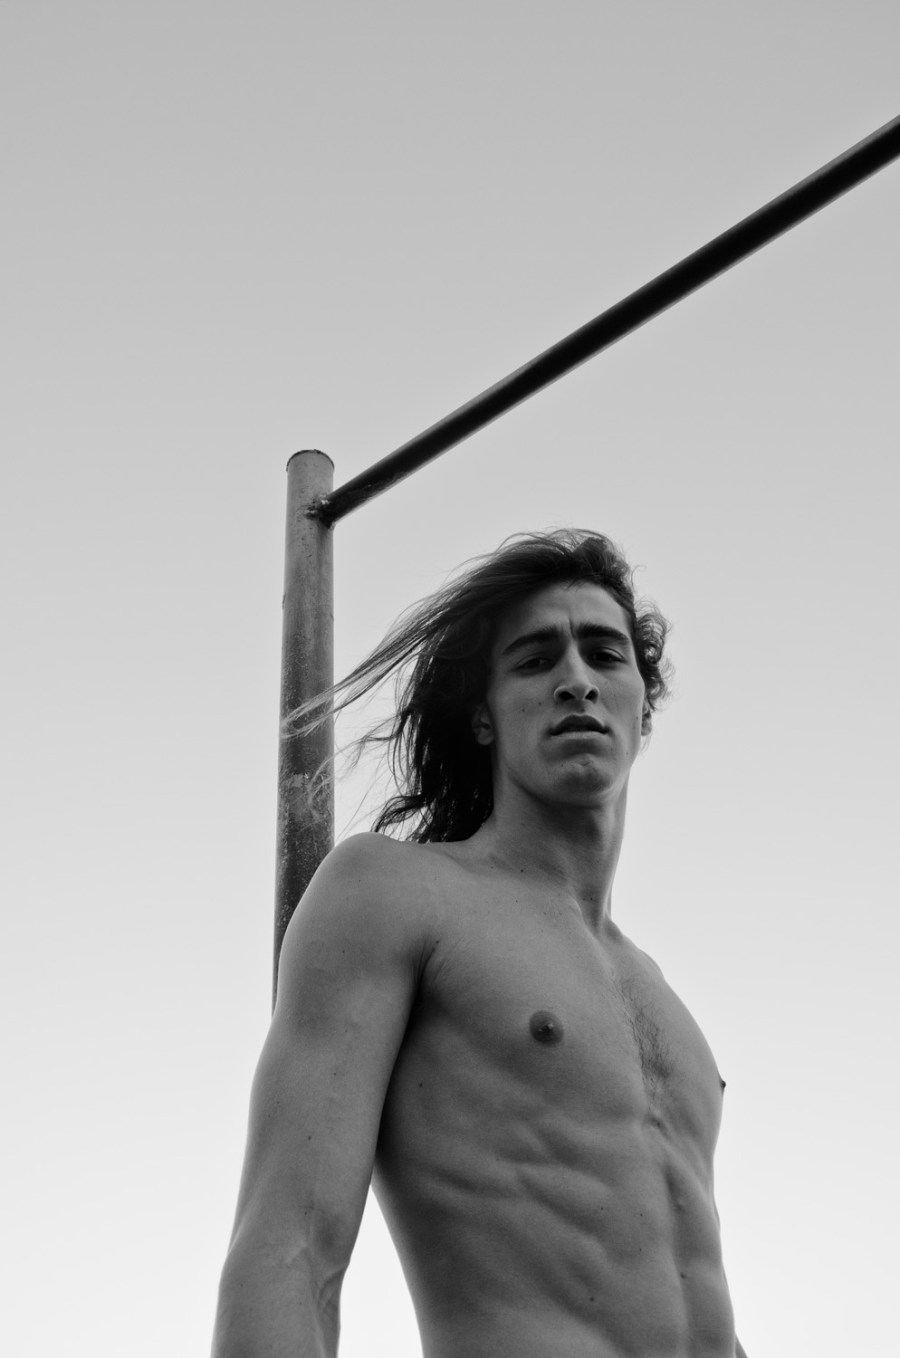 Long hair, don't care. That's the message behind today's jaw-dropping male model Rodrigo Hollinger, he's from 40 Graus Models. Ridiculously good-looking starts posing and stretching out on outdoors in Brazil with one thing and one thing only: Hair down to there. Photography by Felipe Pilotto.